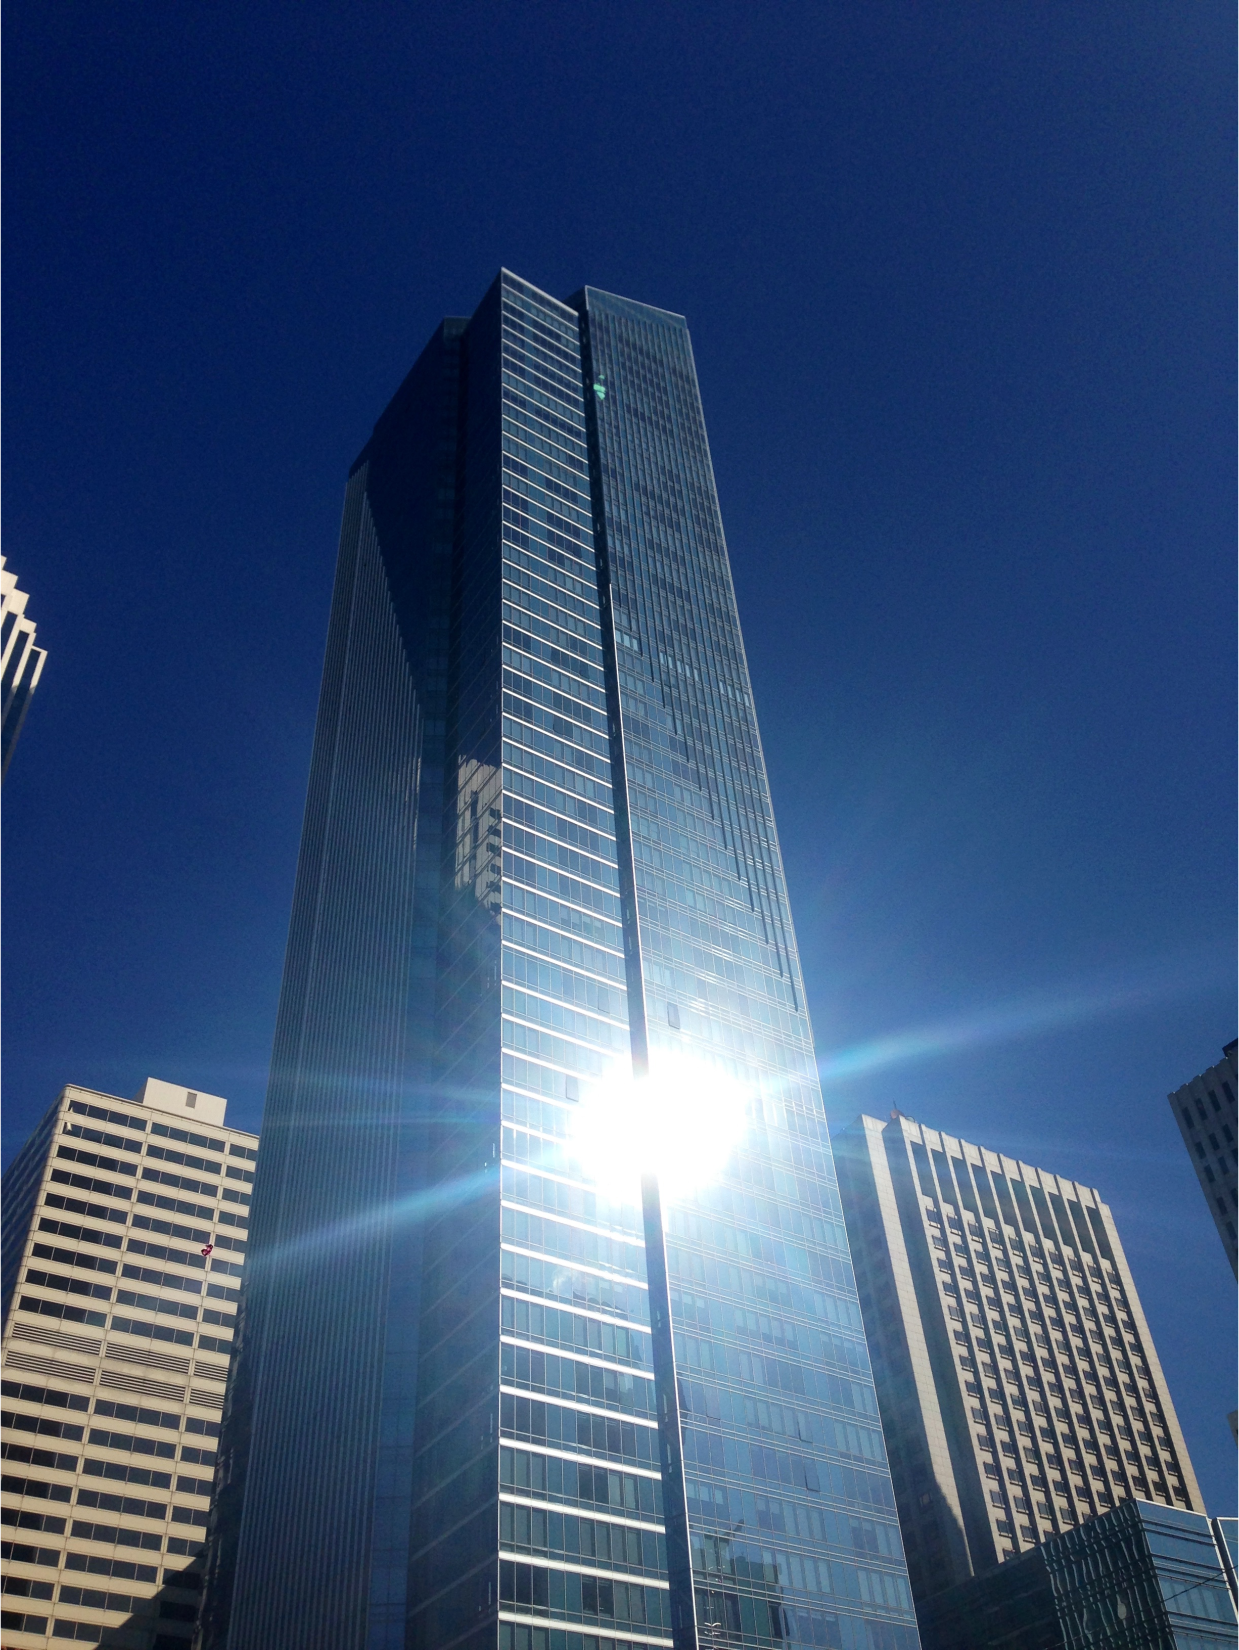 10 stories building clipart transparent library Millennium Tower (San Francisco) - Wikipedia transparent library